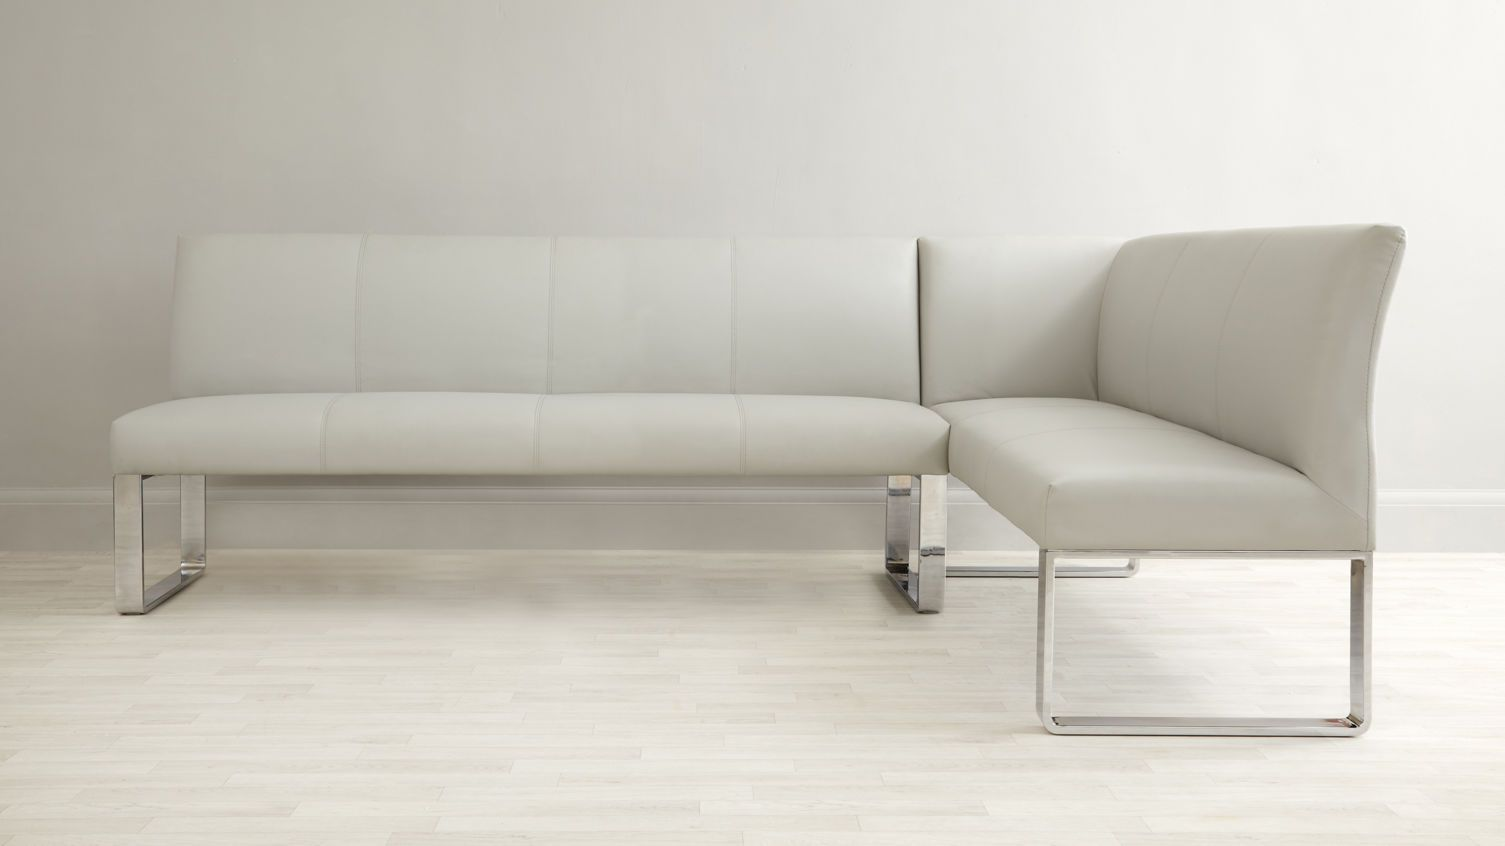 7 Seater Left Hand Corner Bench and